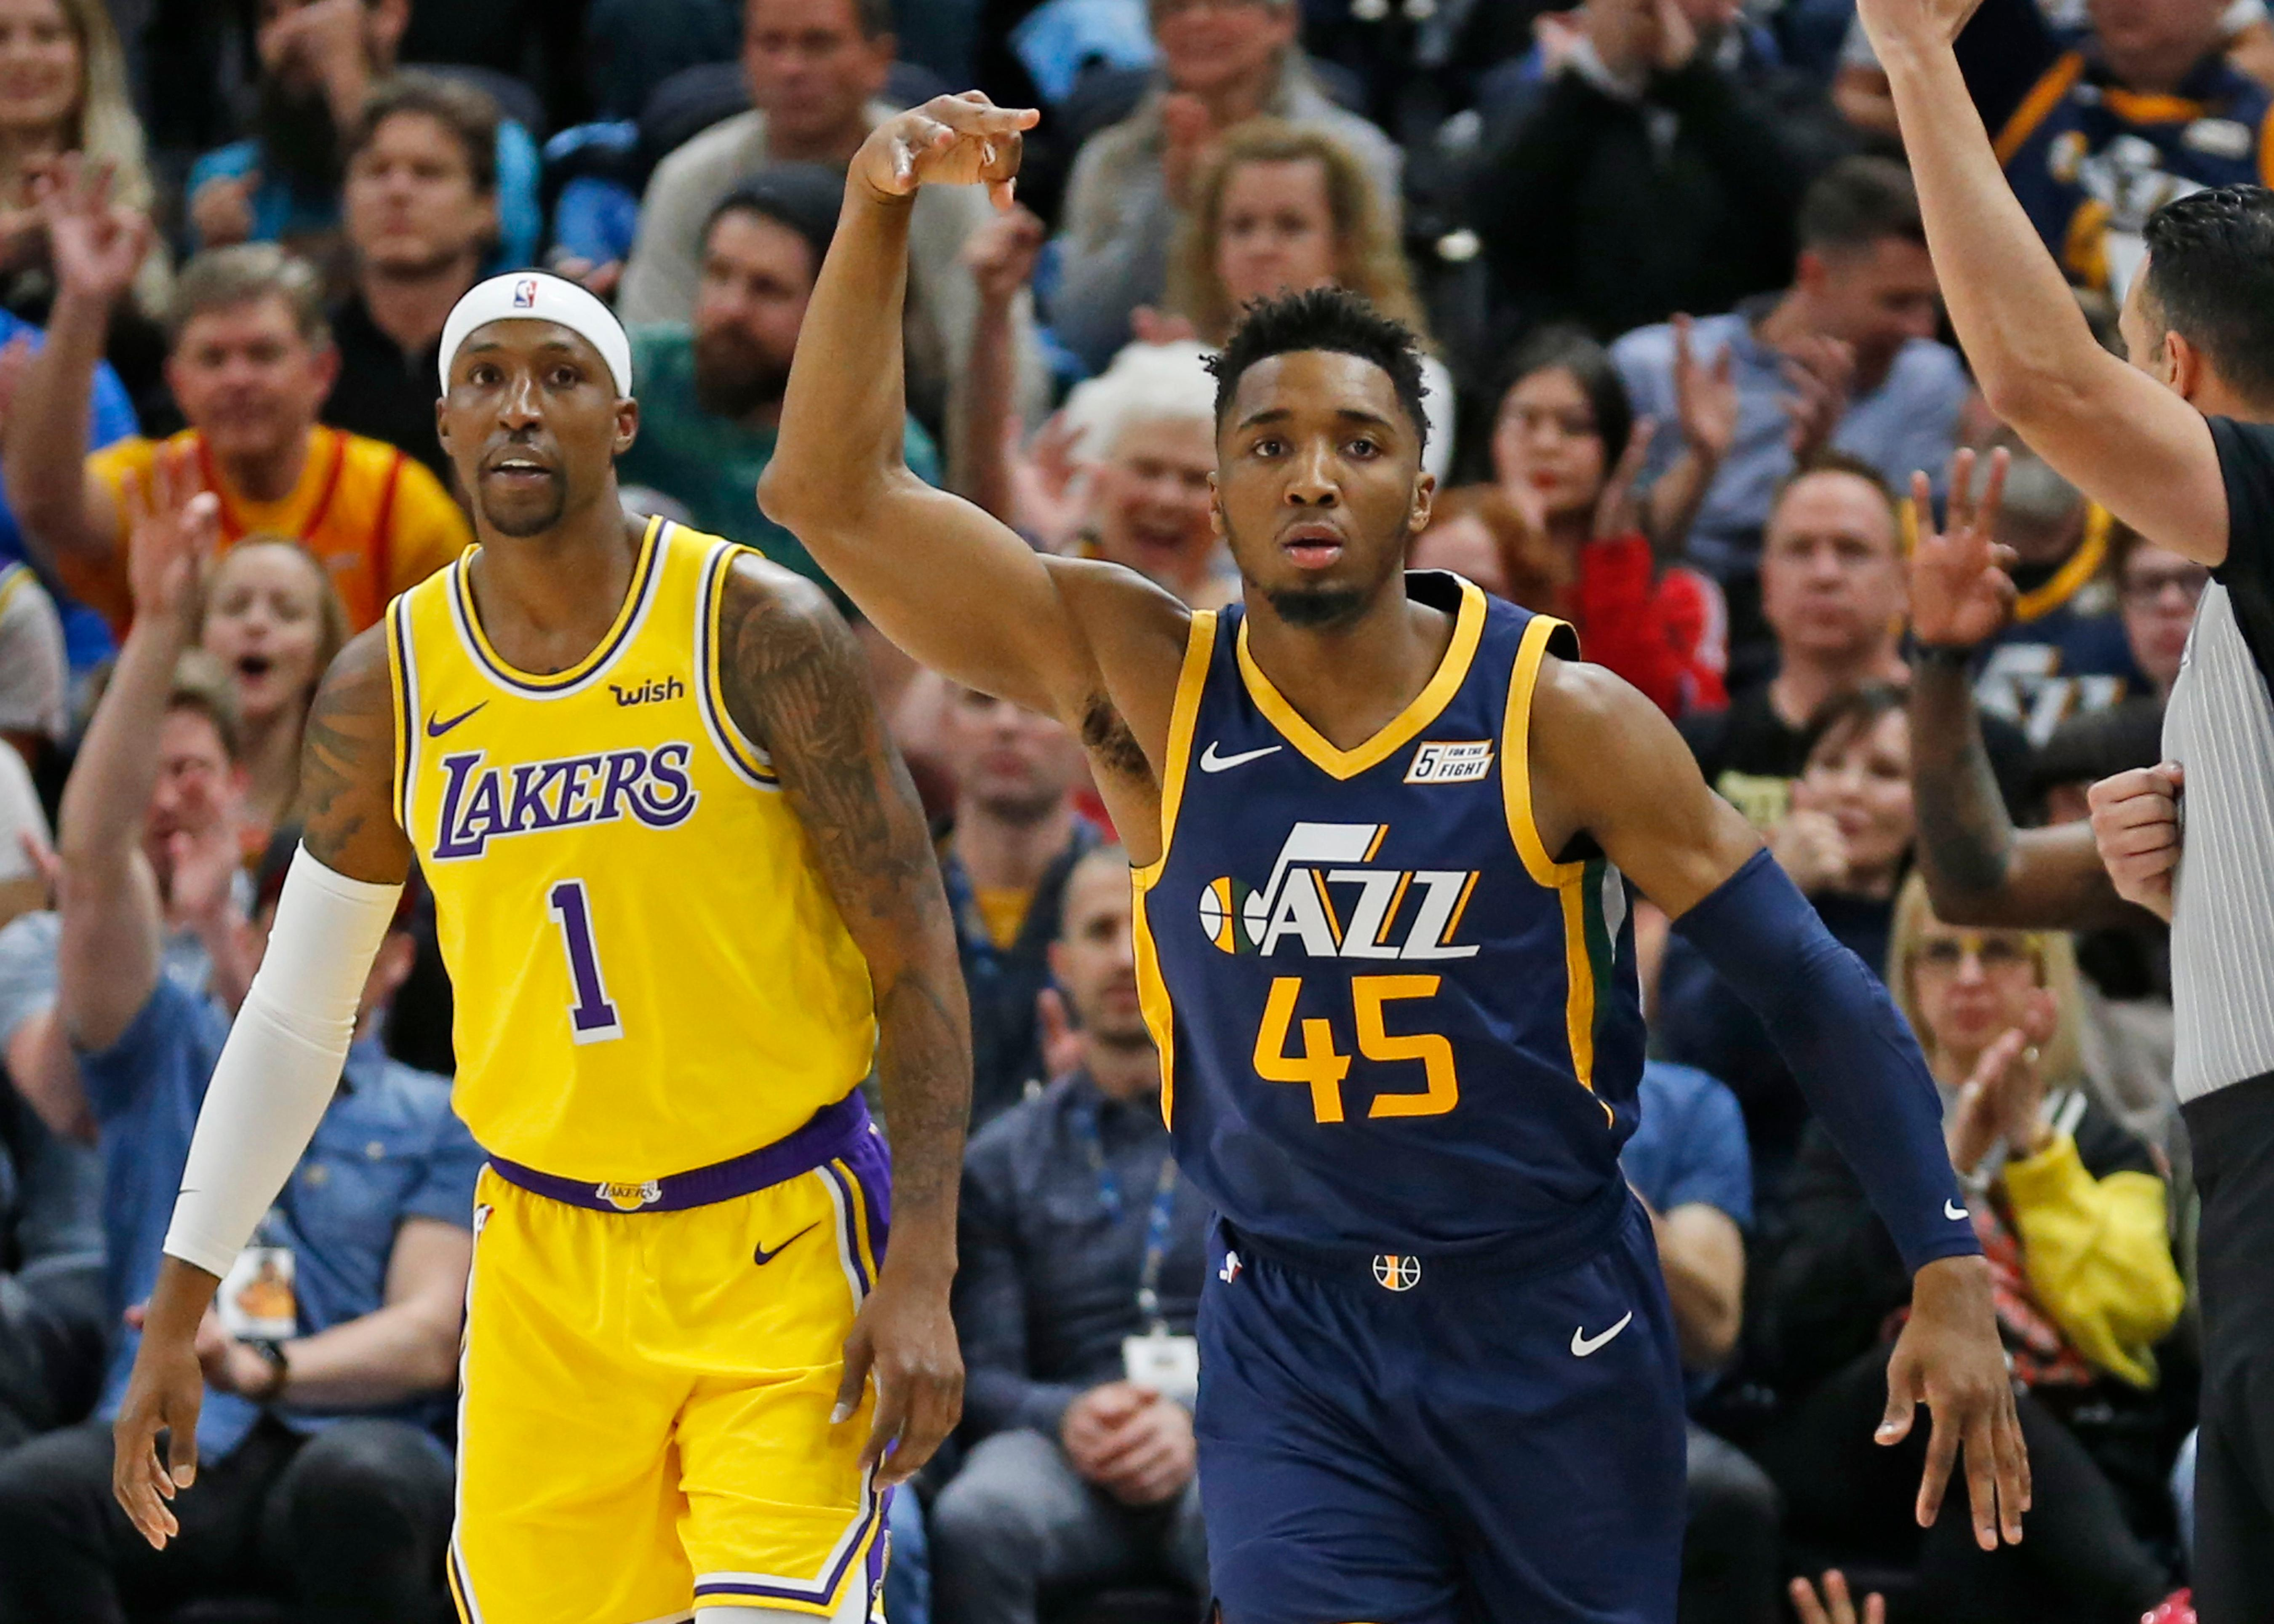 Utah Jazz guard Donovan Mitchell (45) celebrates after scoring 3-pointer against Los Angeles Lakers guard Kentavious Caldwell-Pope (1) during the first half of an NBA basketball game Wednesday, March 27, 2019, in Salt Lake City. (AP Photo/Rick Bowmer)